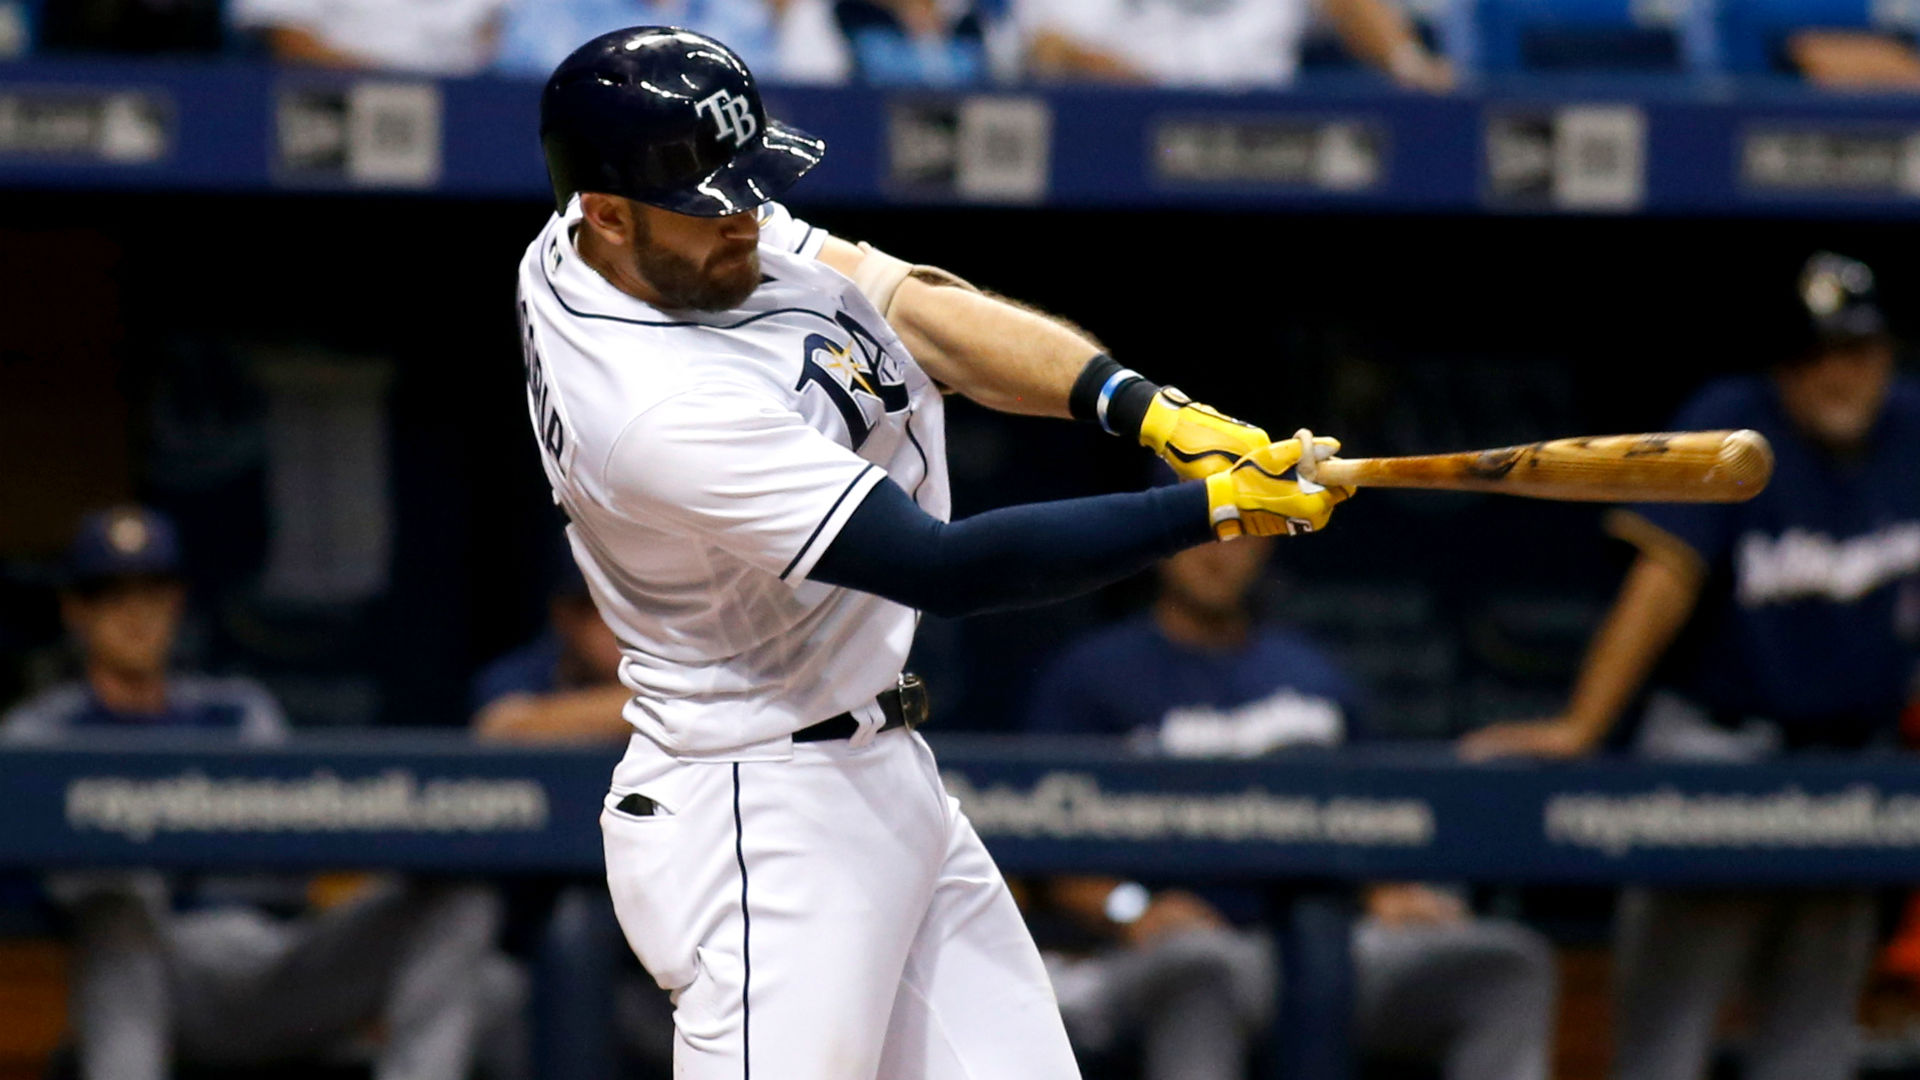 Giants Acquire Evan Longoria from Rays in 5-Player Trade